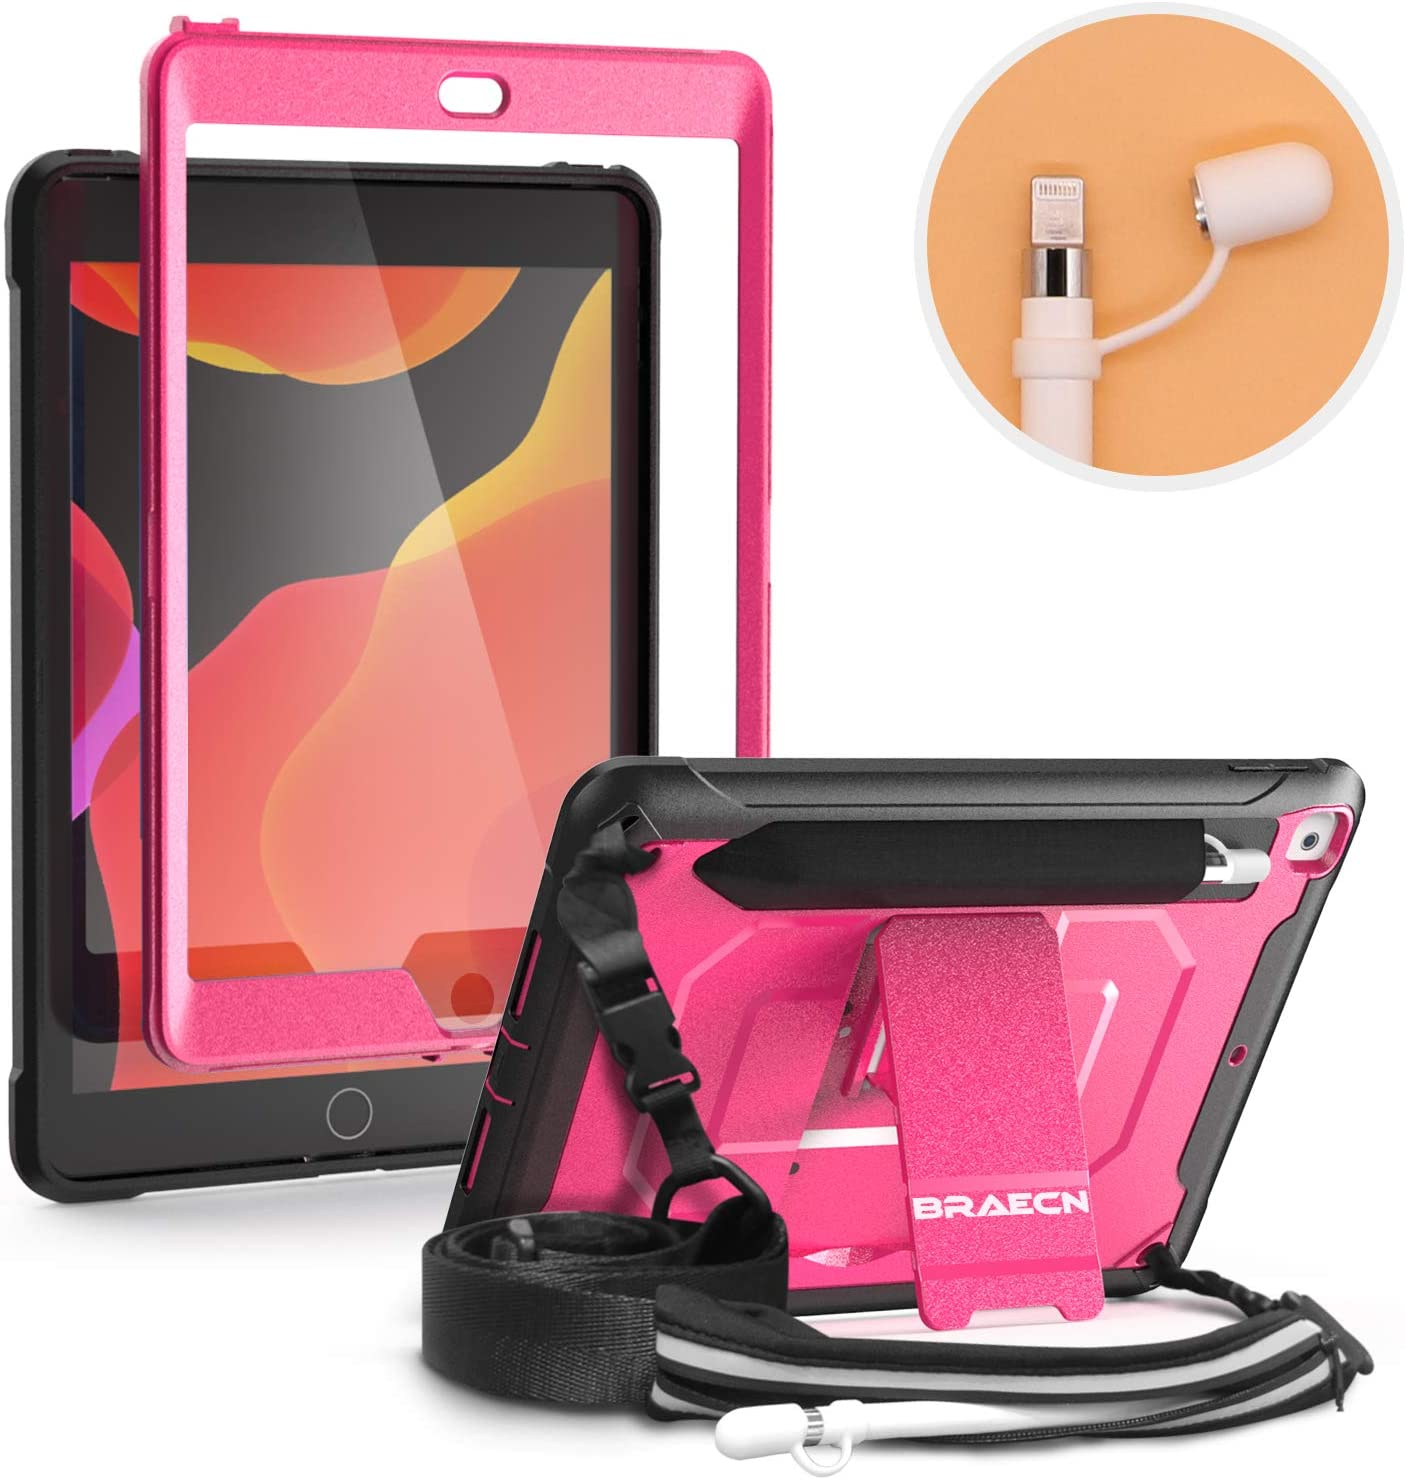 BRAECN iPad 10.2 2019 Case,with Shoulder Strap,Kickstand,Built-in Screen Protector,Pencil Holder & Storage Pencil Pouch,Pencil Cap Holder,Full-Body Rugged Cover for 7th generation iPad 10.2 case -Pink